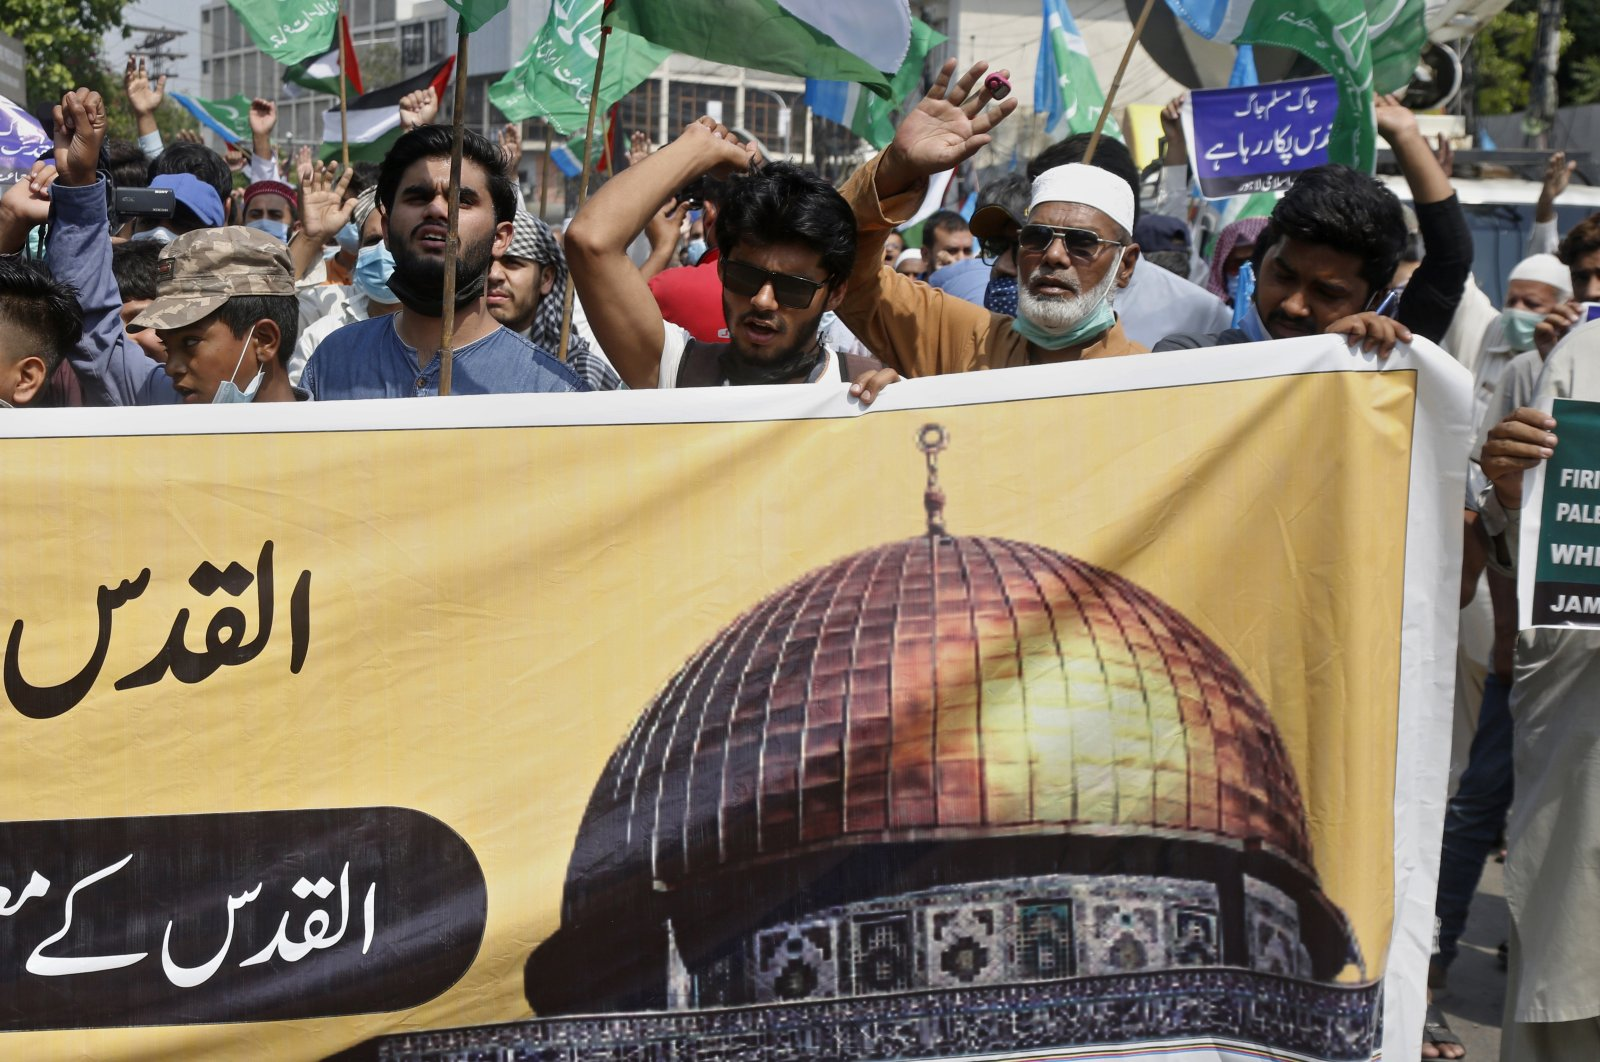 Supporters of the Pakistani religious group Jamaat-e-Islami chant slogans during a rally to condemn Israel's use of force against the Palestinians at the Al-Aqsa mosque compound in Jerusalem, in Lahore, Pakistan, Wednesday, May 12, 2021. (AP Photo/K.M. Chaudary)